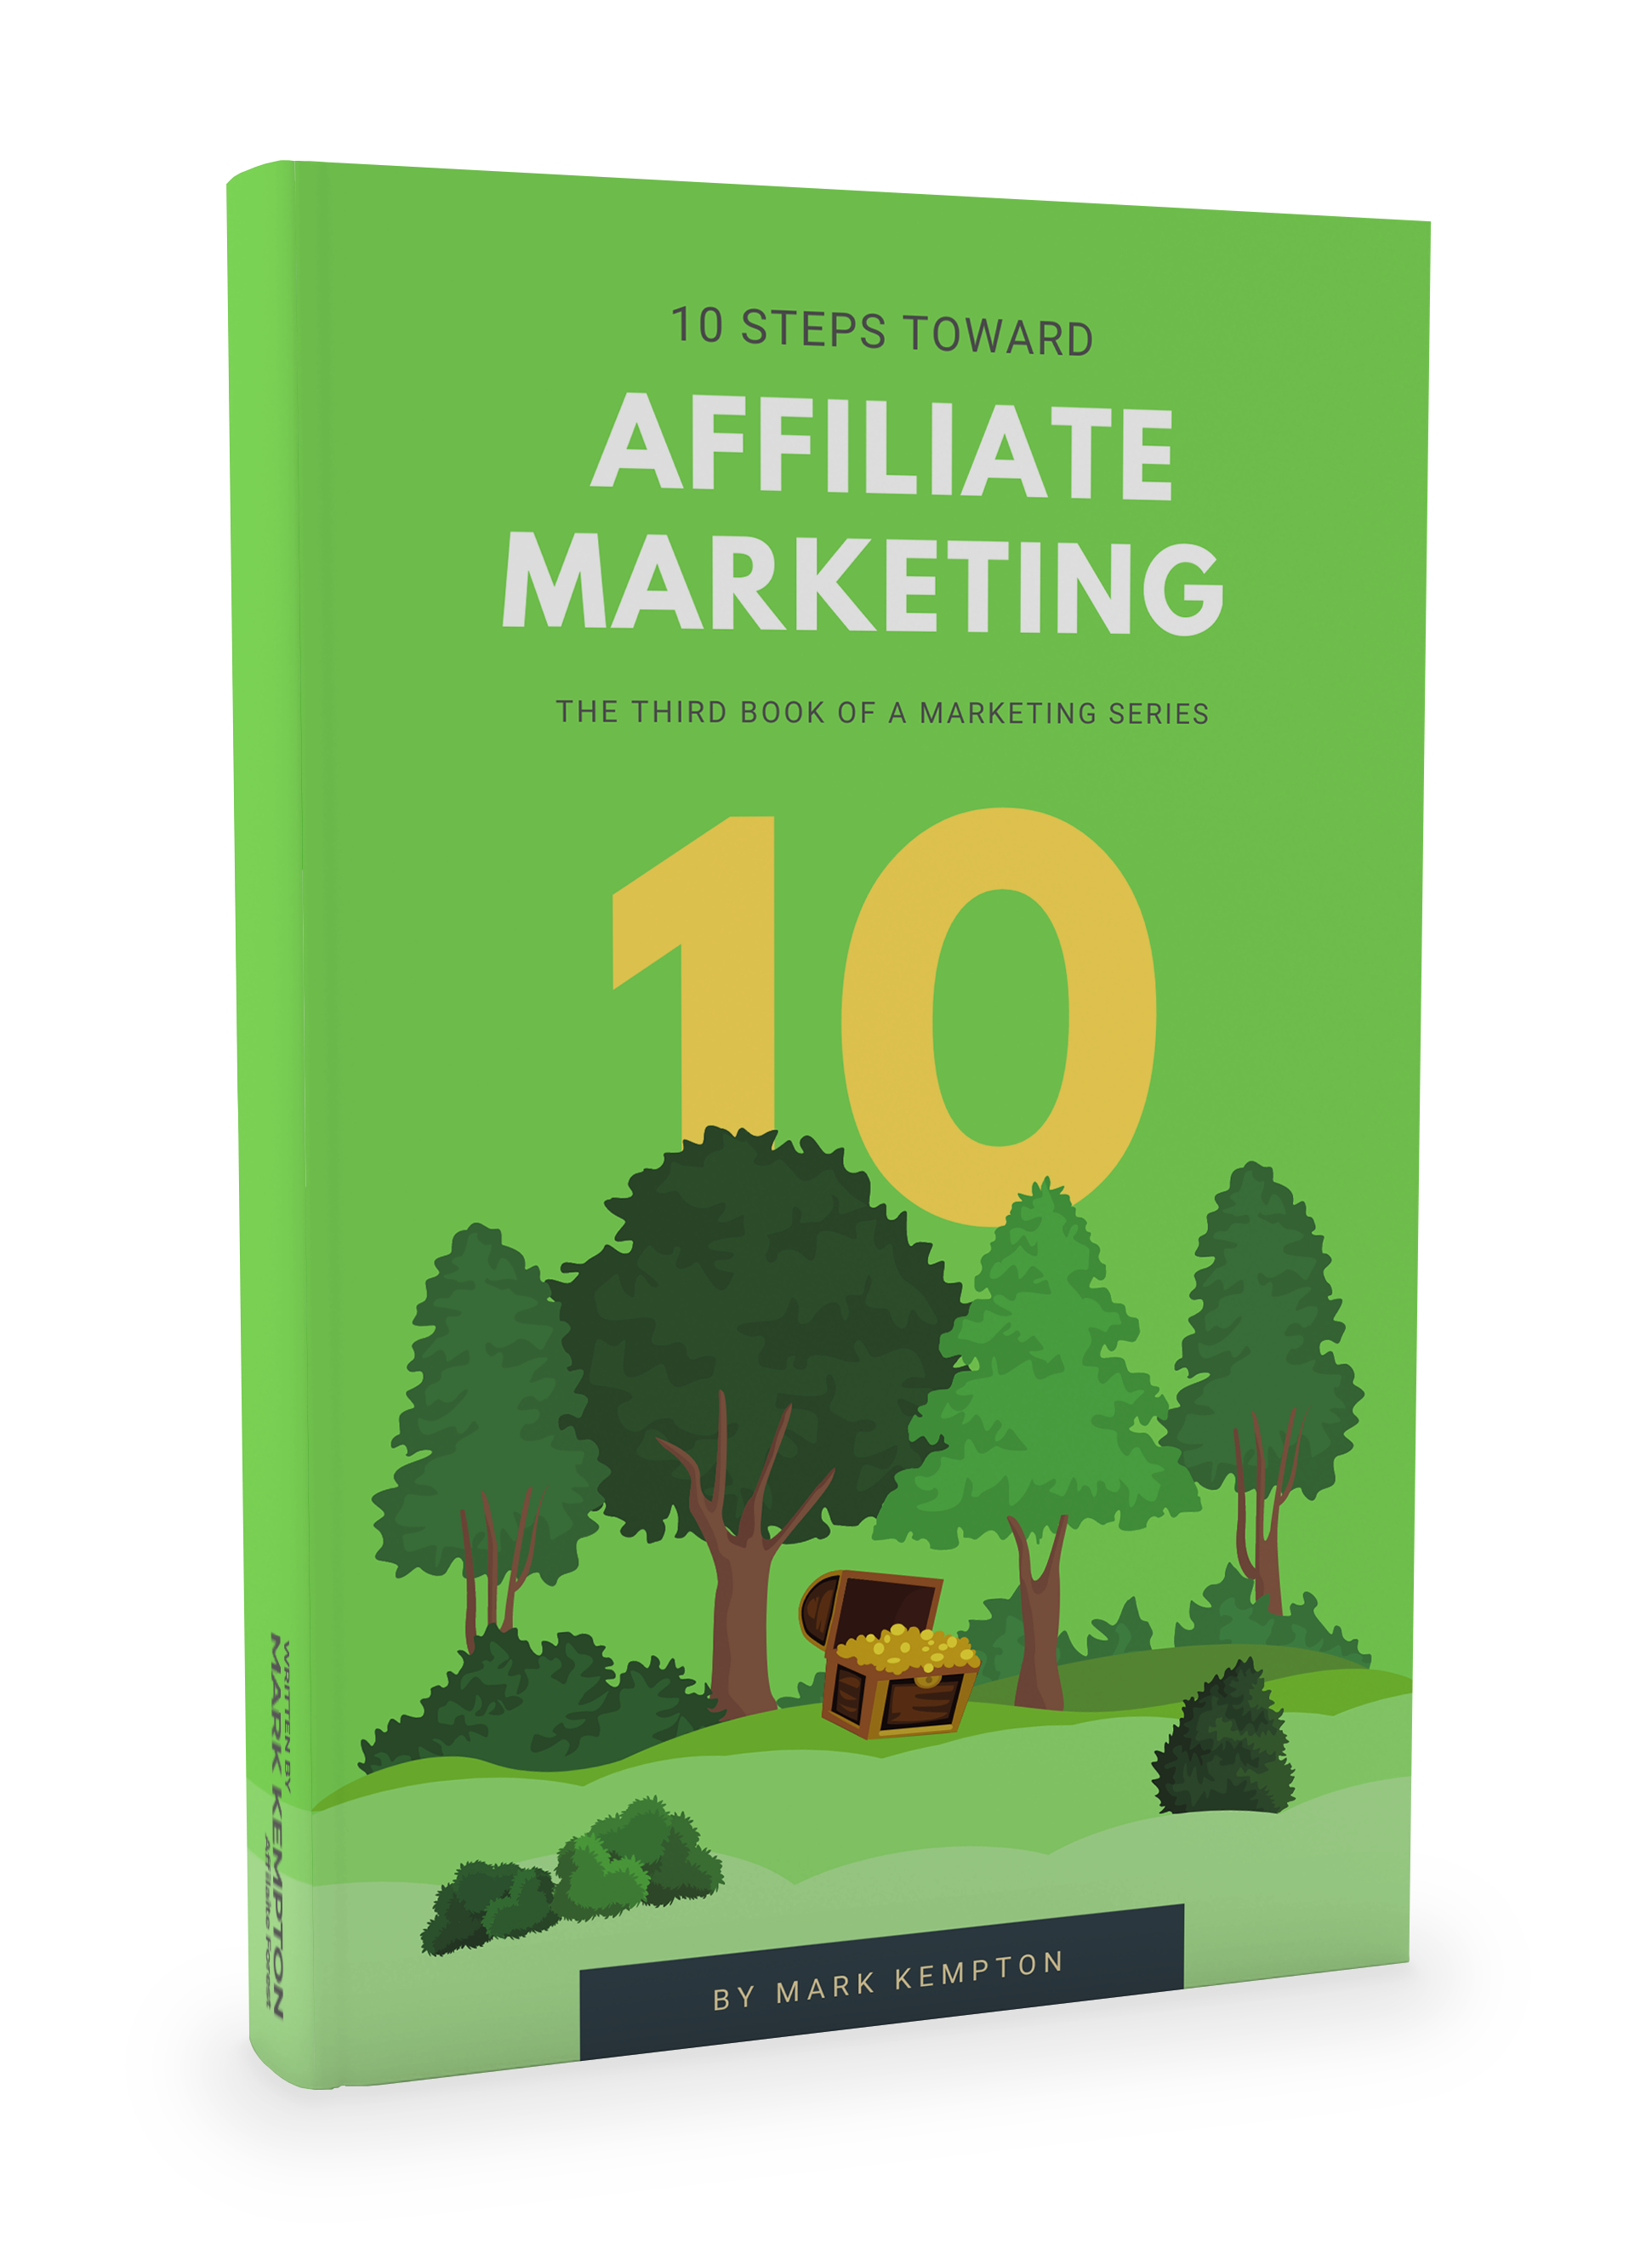 Steps Toward Affiliate Marketing